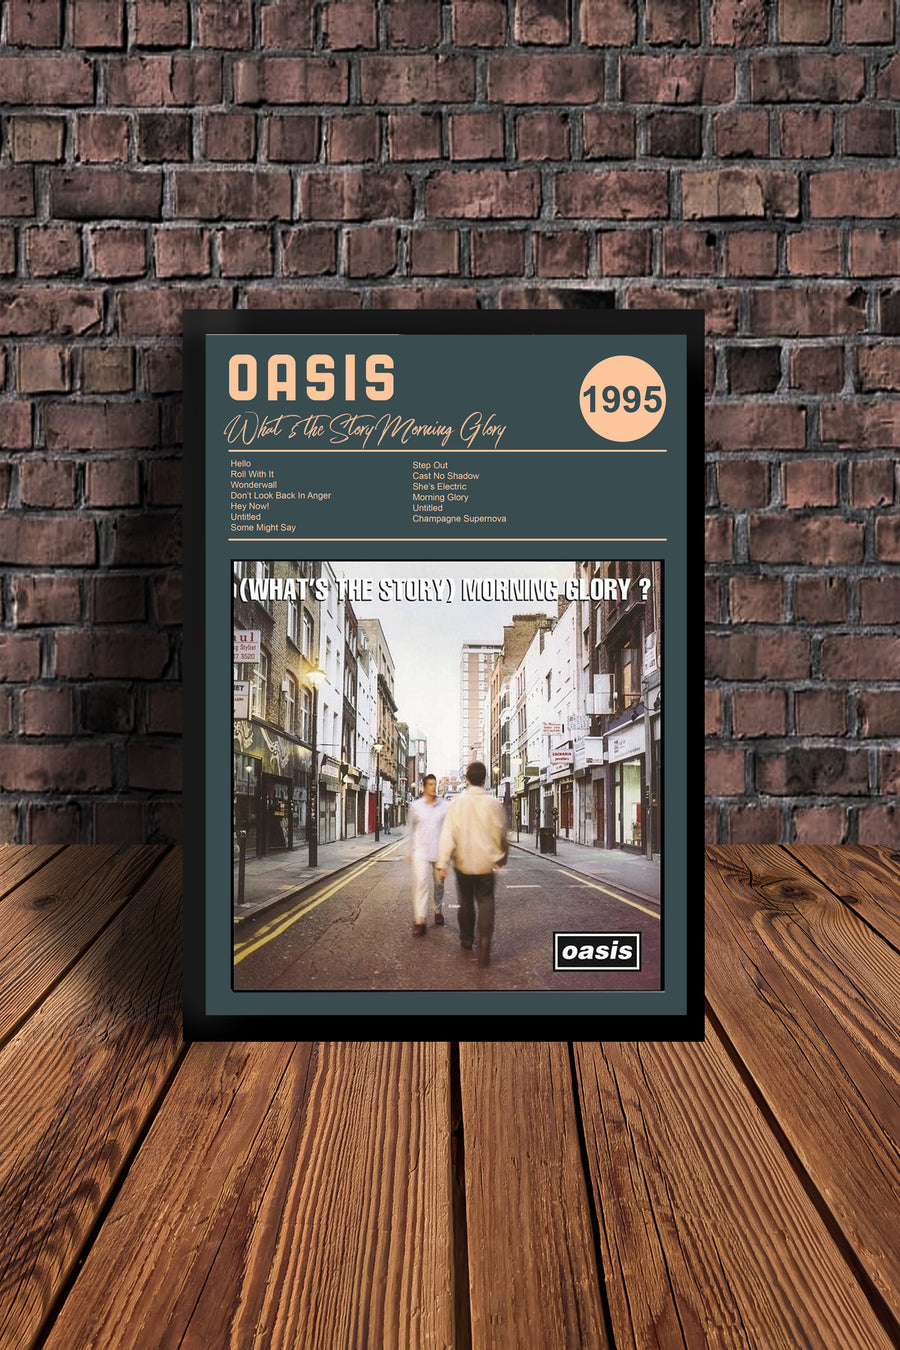 Oasis 'Whats the story morning glory' Tribute Print